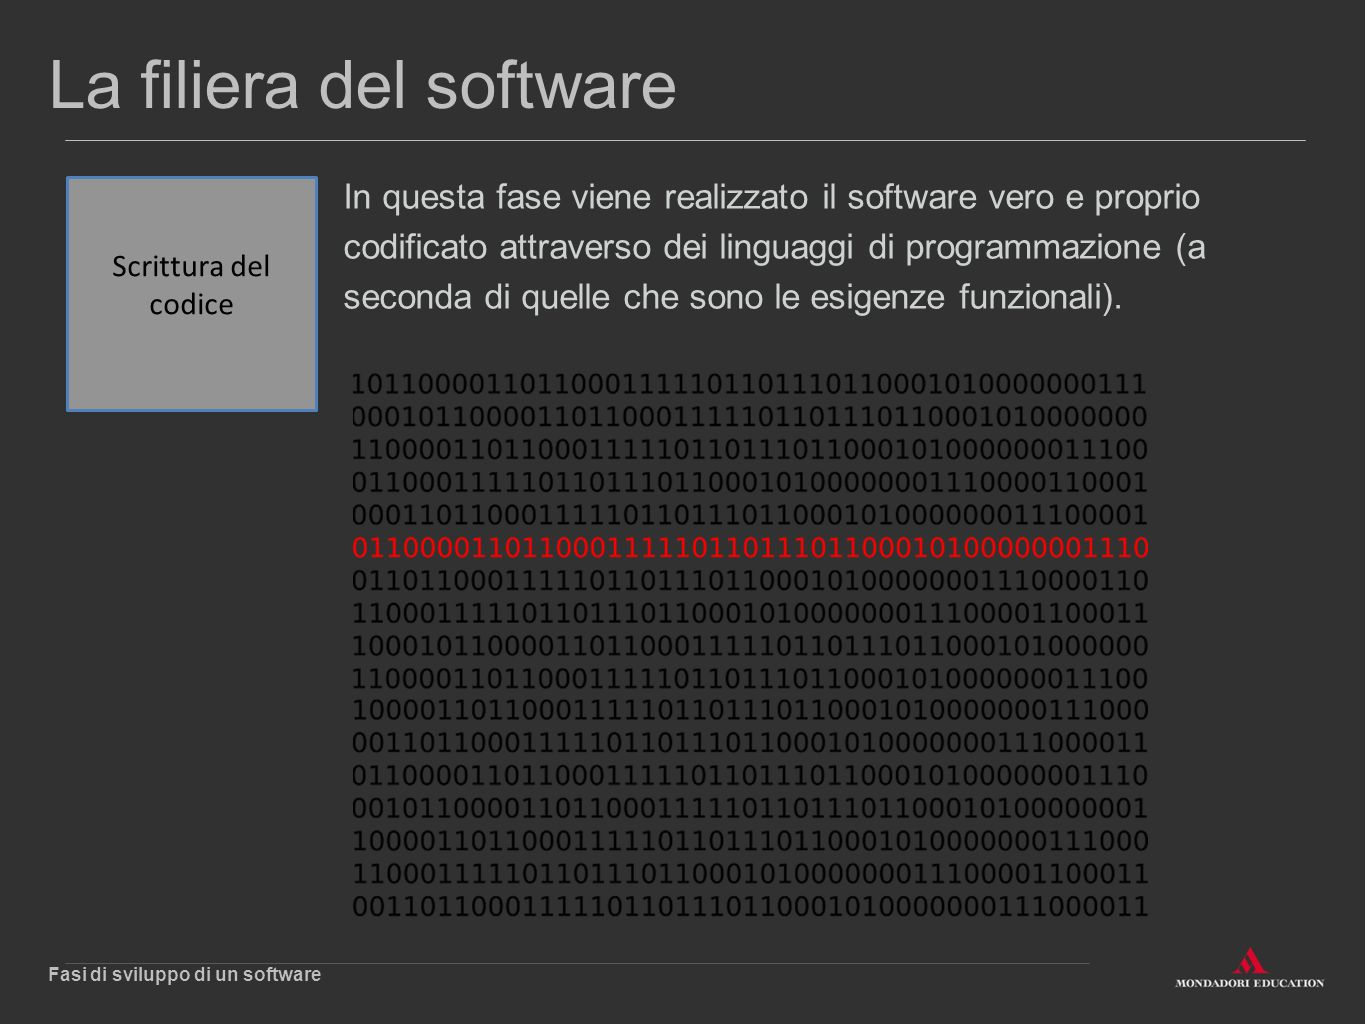 La filiera del software